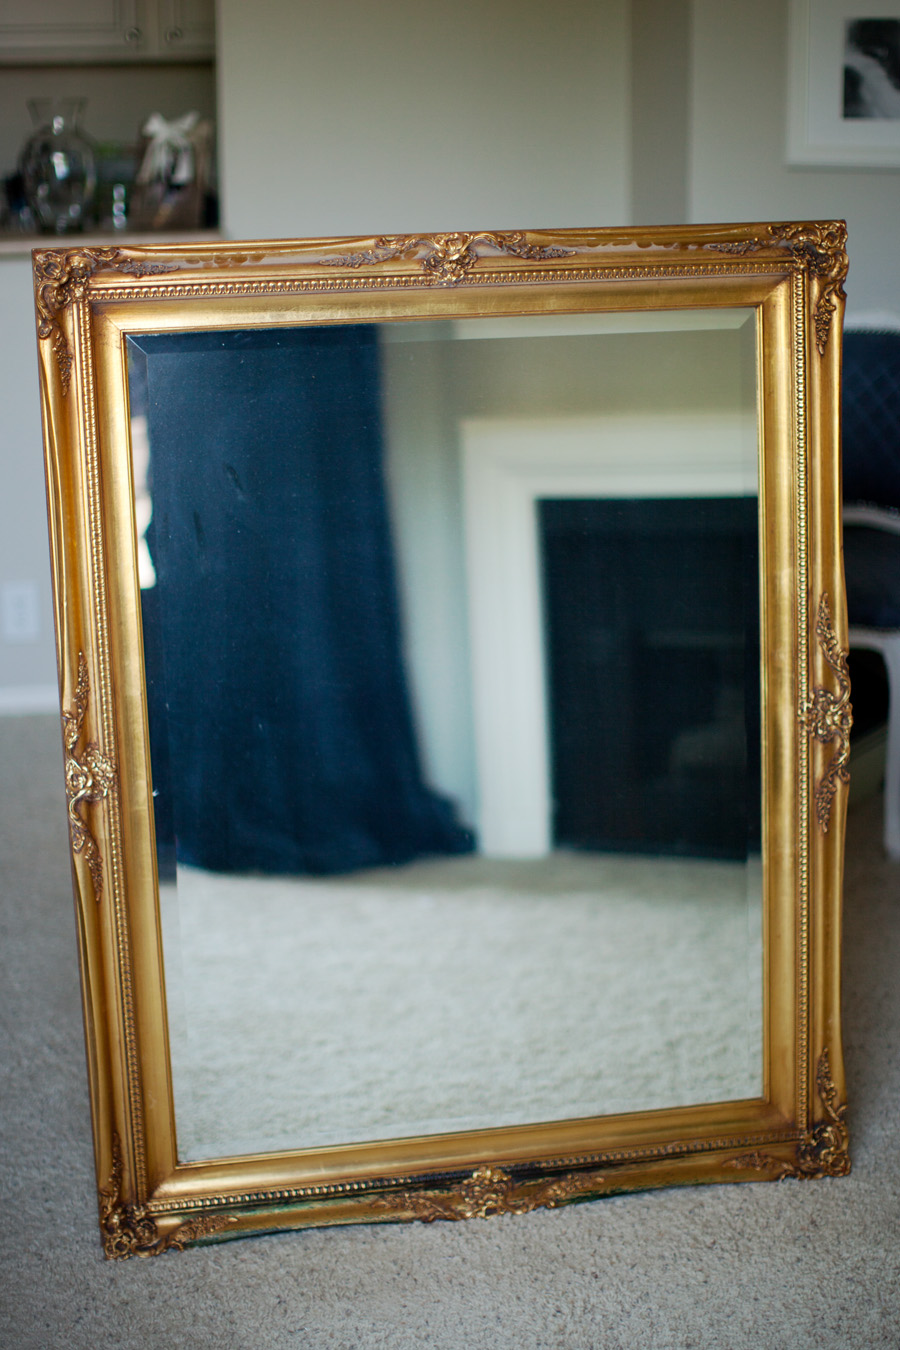 Diy Mirror Makeover Faux Finishing With Metallic Paints Melodrama